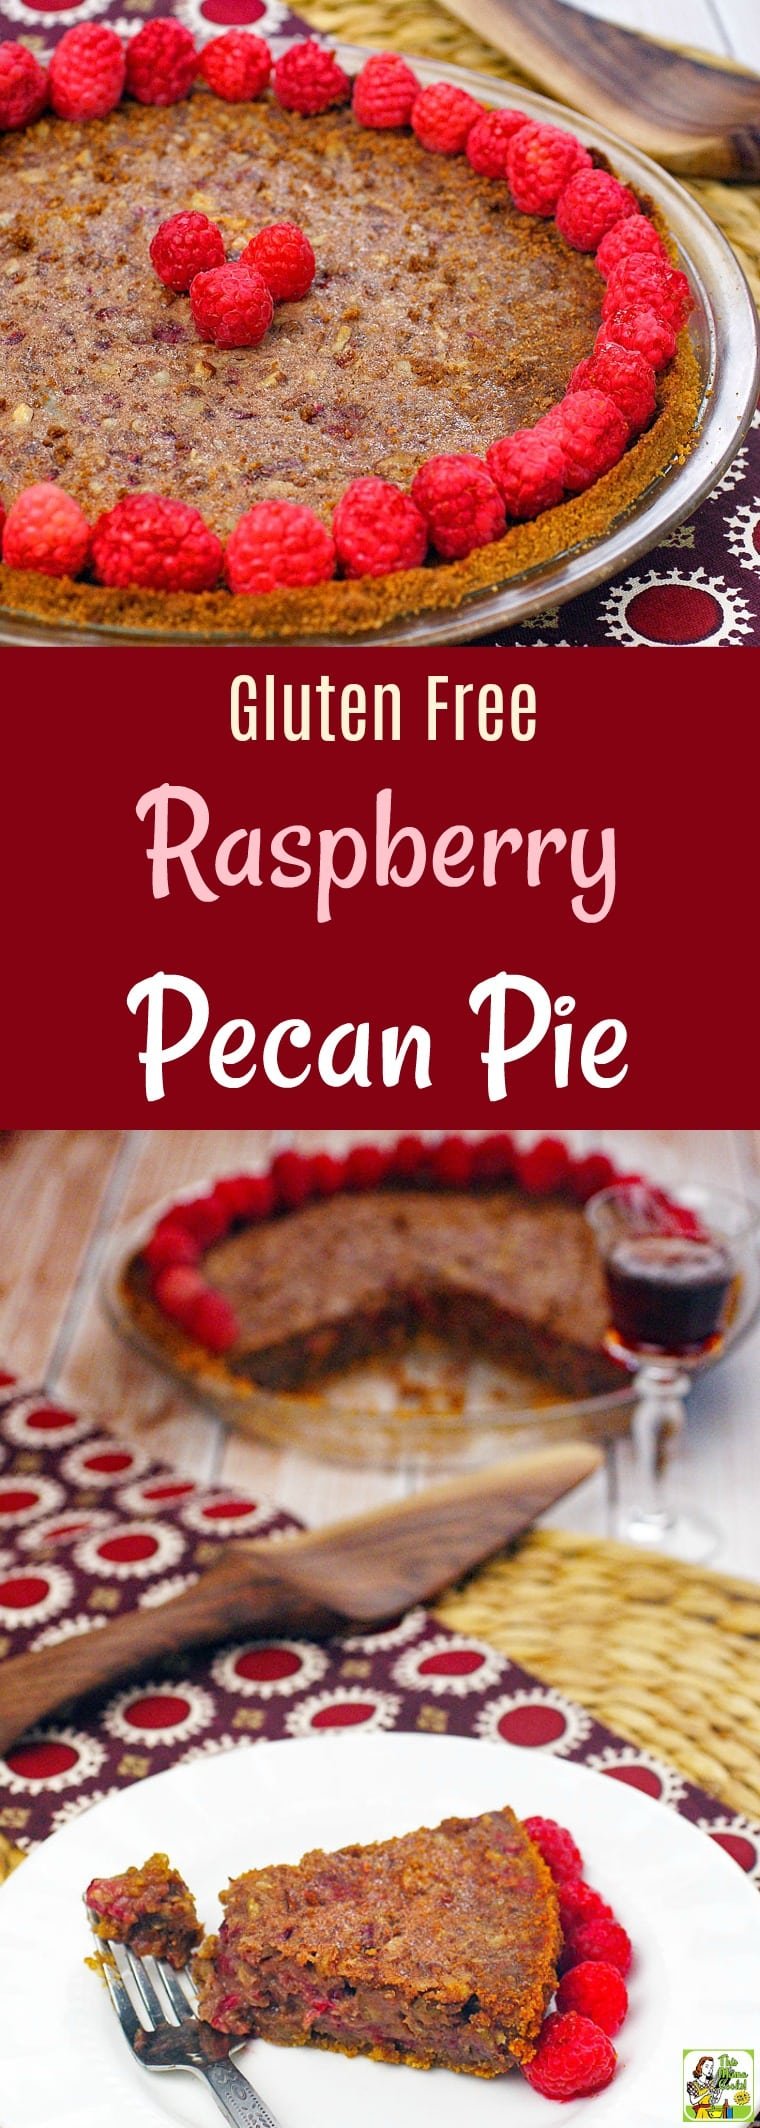 Looking for a unique recipe for pecan pie for Thanksgiving? Try this easy pecan pie recipe with raspberries! This Gluten Free Raspberry Pecan Pie can be made a day in advance. Comes with directions for making a gluten free pie crust from gluten free cookies. #glutenfree #pie #pi #Thanksgiving #pecan #pecans #raspberries #dessert #glutenfreedessert #glutenfreecrust #baking #piecrust #easypierecipe #easypiecrust